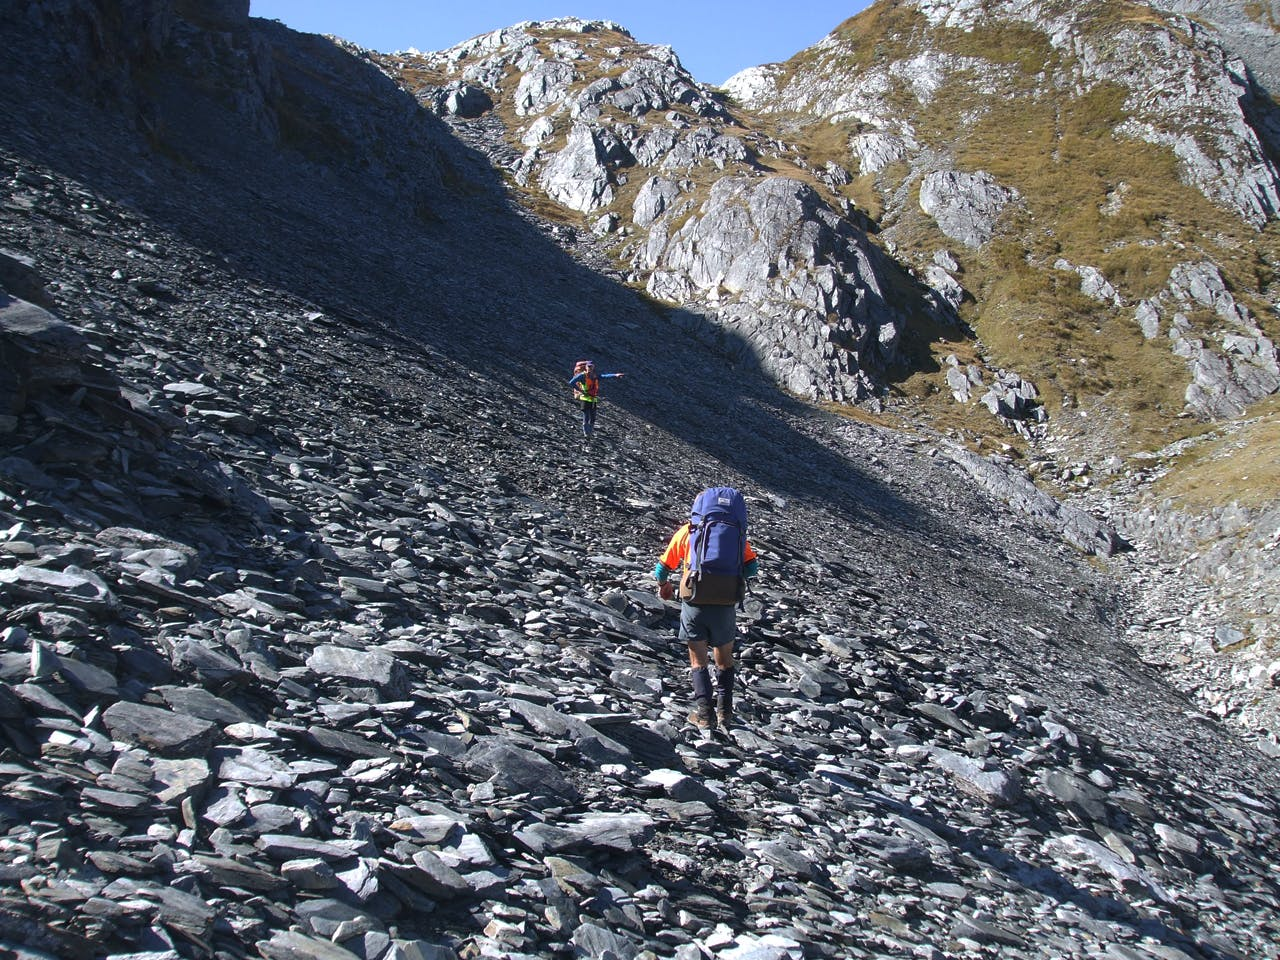 SAR volunteers involved in the search fir Reynolds have continued searching in their own time